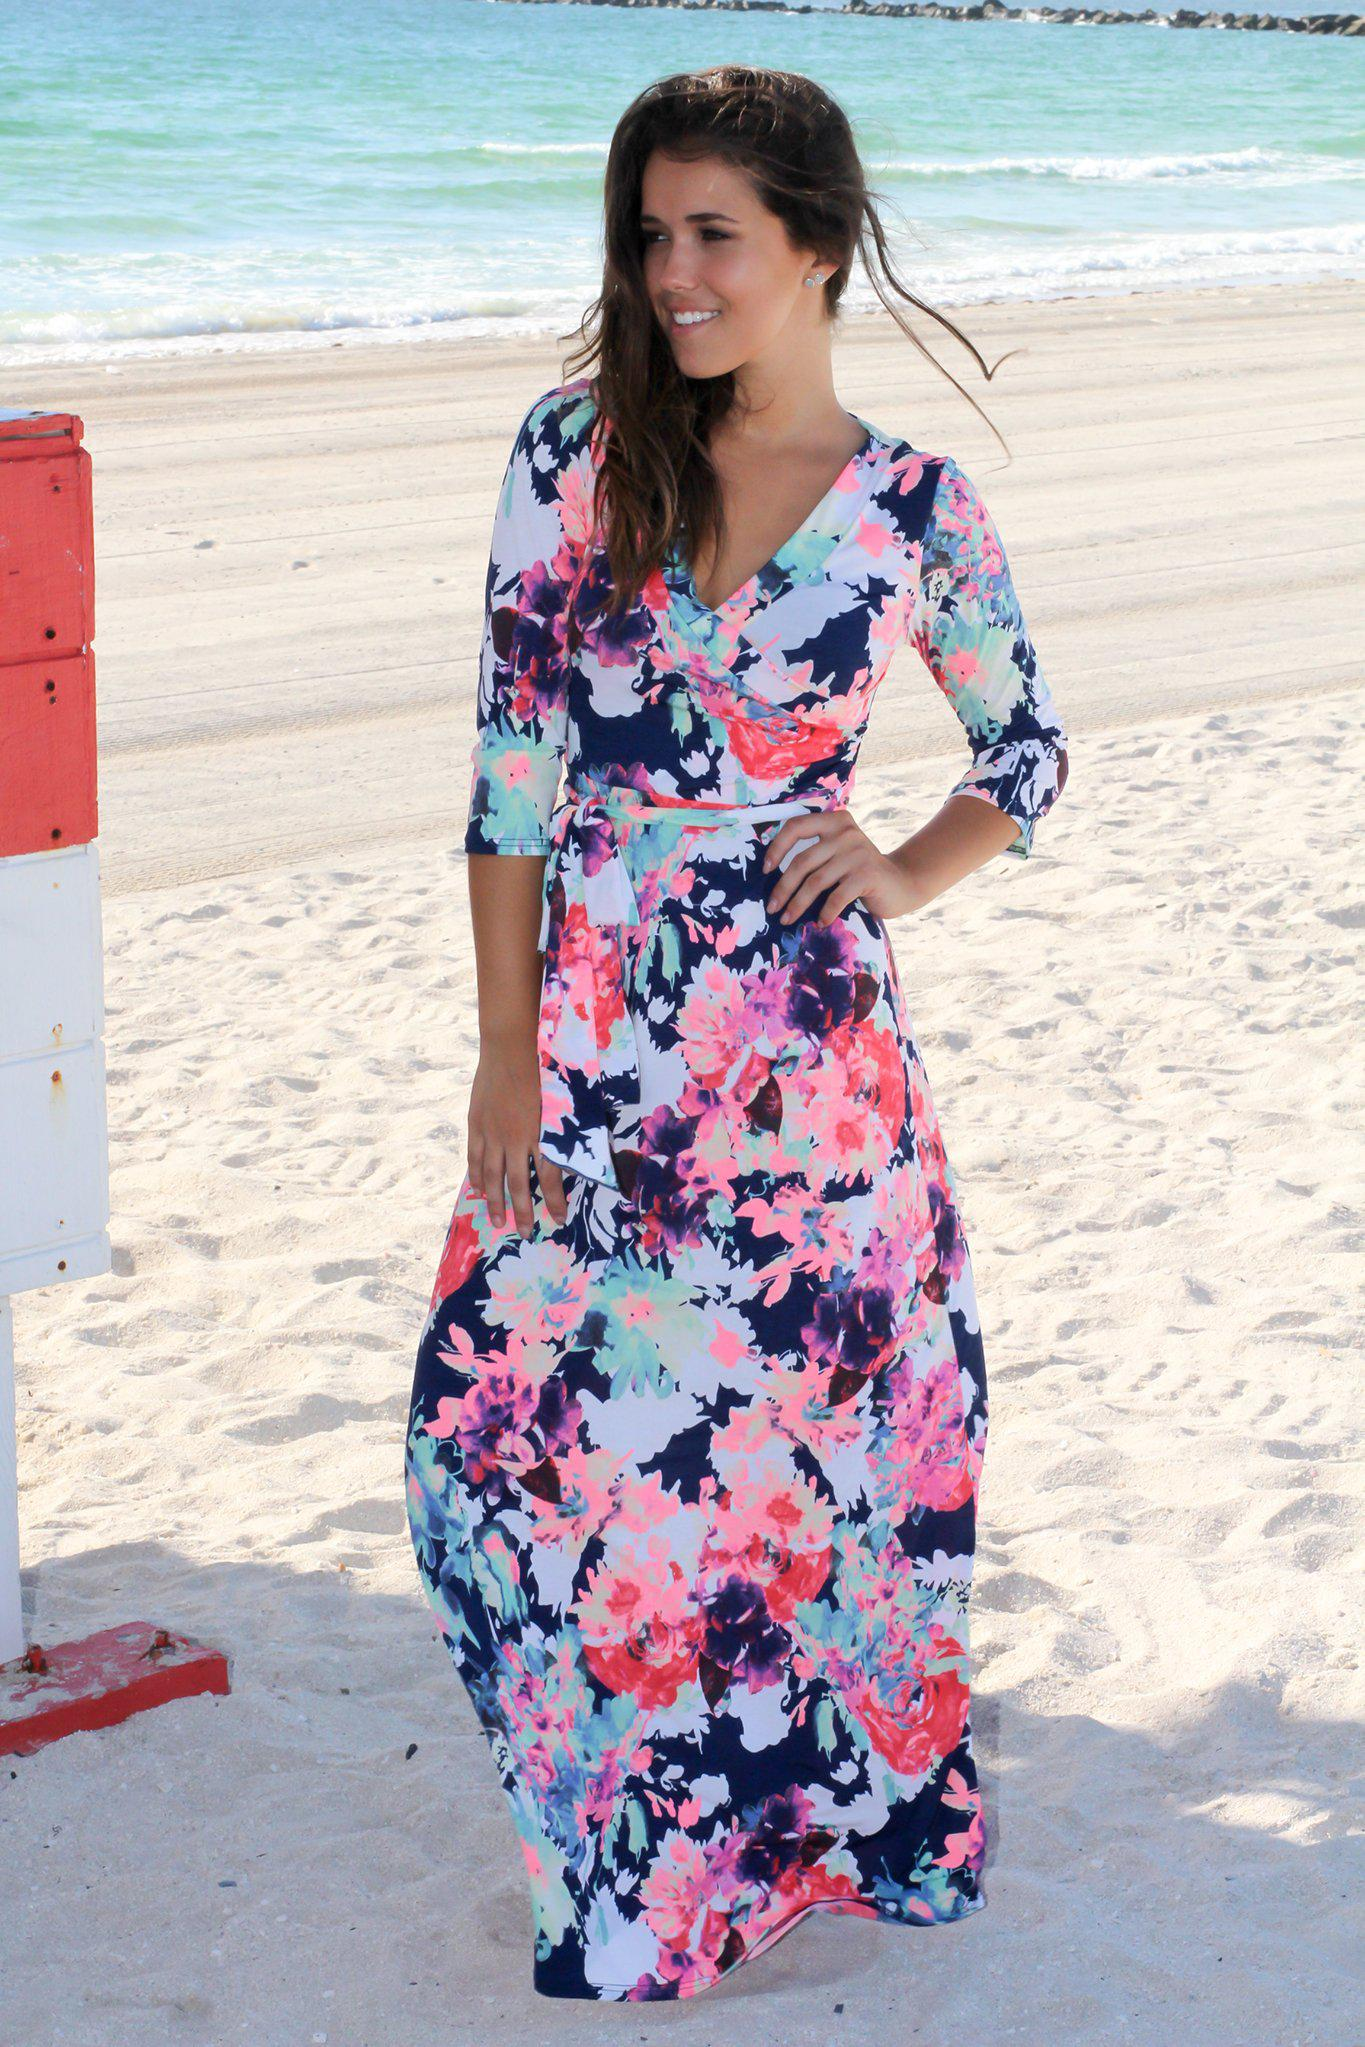 e0ab5c9e28d5 Neon Floral Wrap Maxi Dress with 3/4 Sleeves   Maxi Dresses – Saved ...